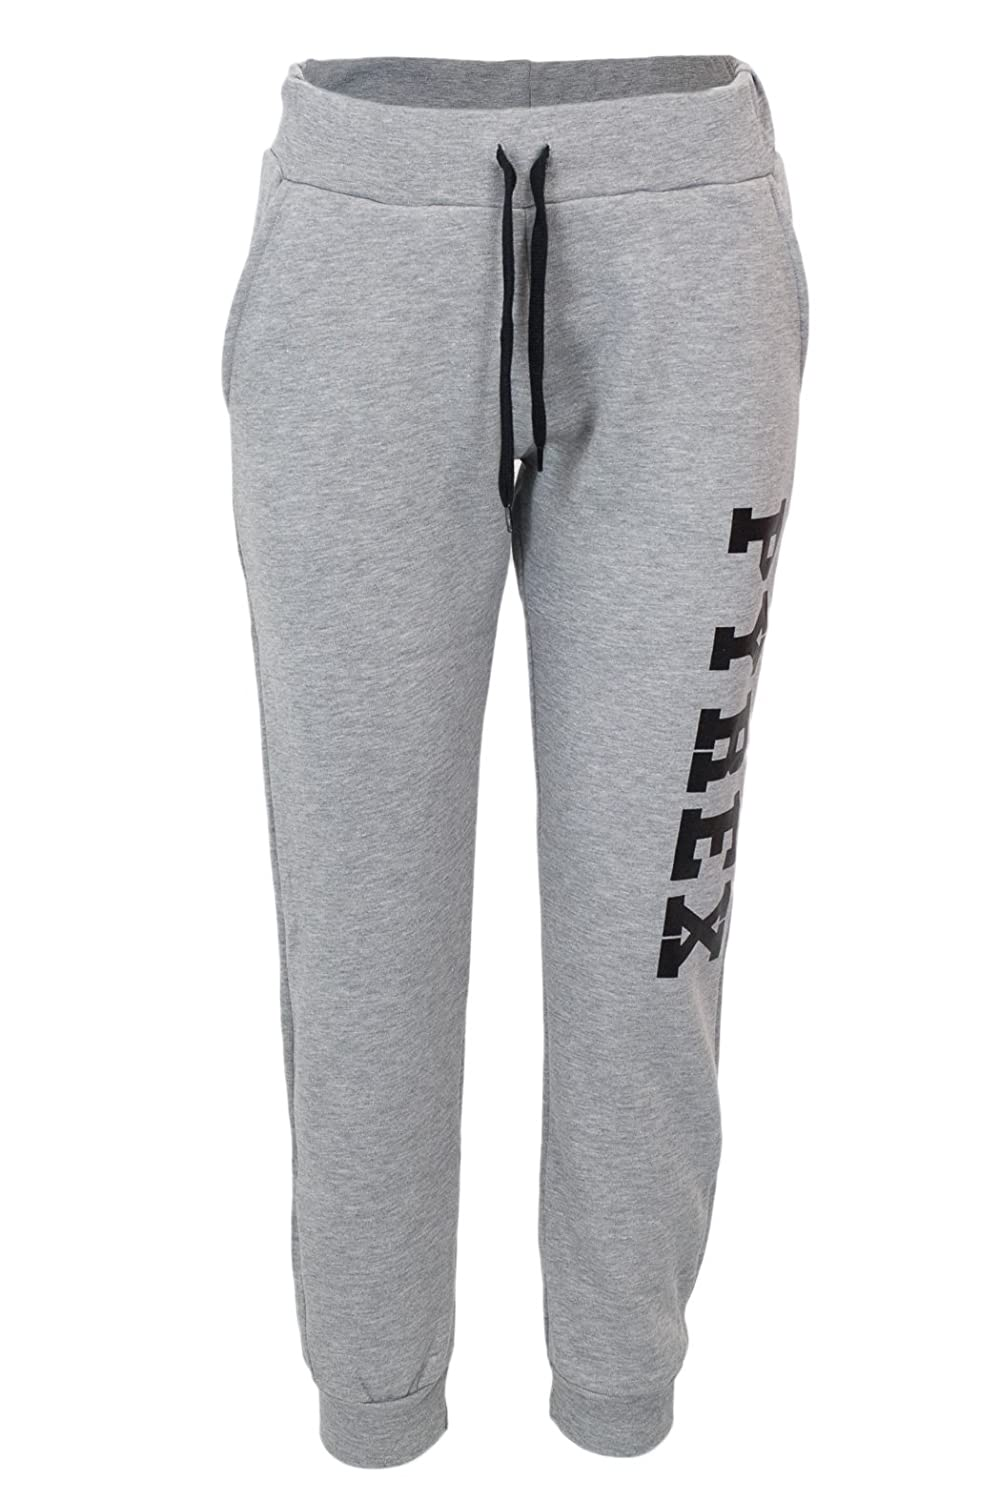 Pyrex Pantalone 34233 Donna Basic in Felpa con Stampa Laterale MainApps